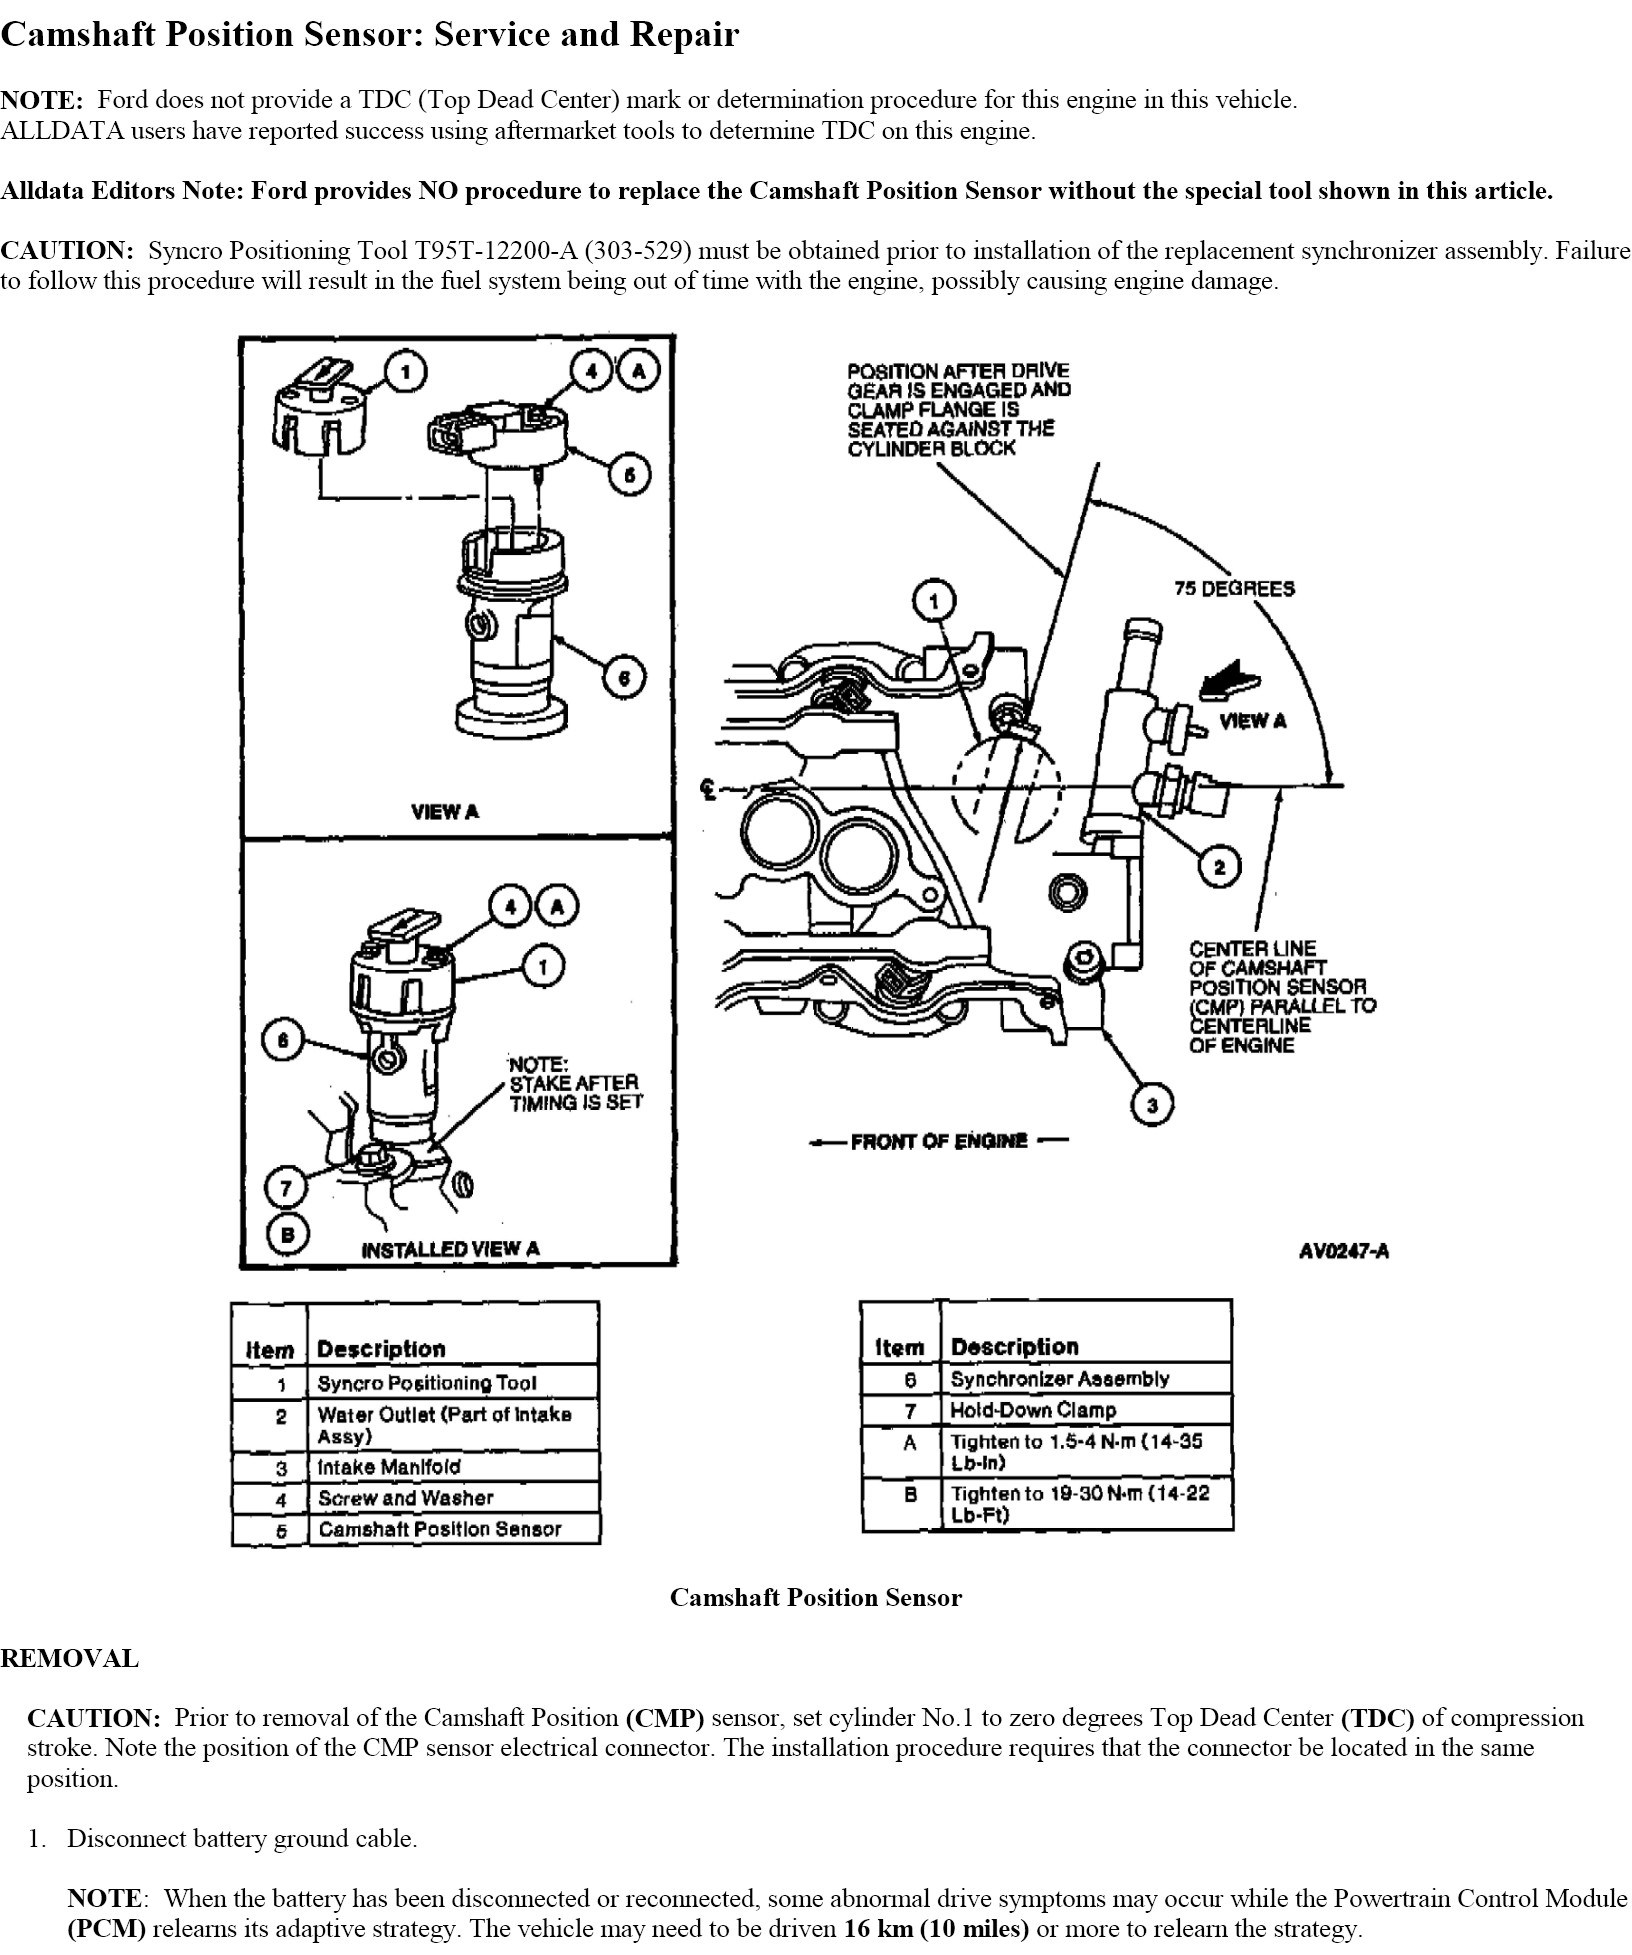 Where Is The Camshaft Sensor Located On A 1997 Ford Taurus